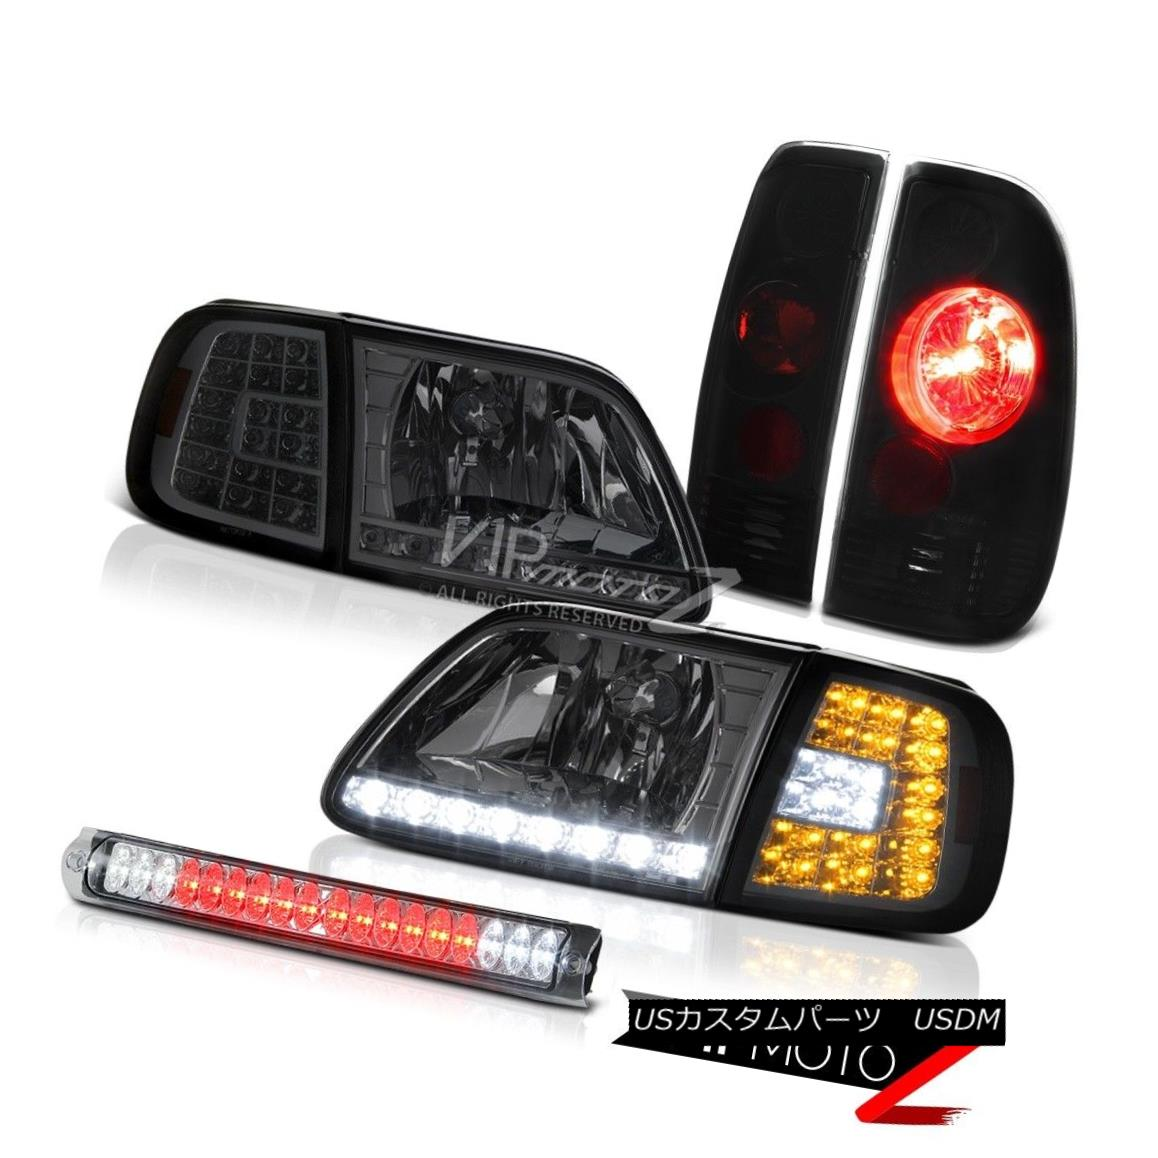 NEW Taillight Taillamp Pair Set Both Fits 97 98 99 00 01 02 03 Ford F150 rear